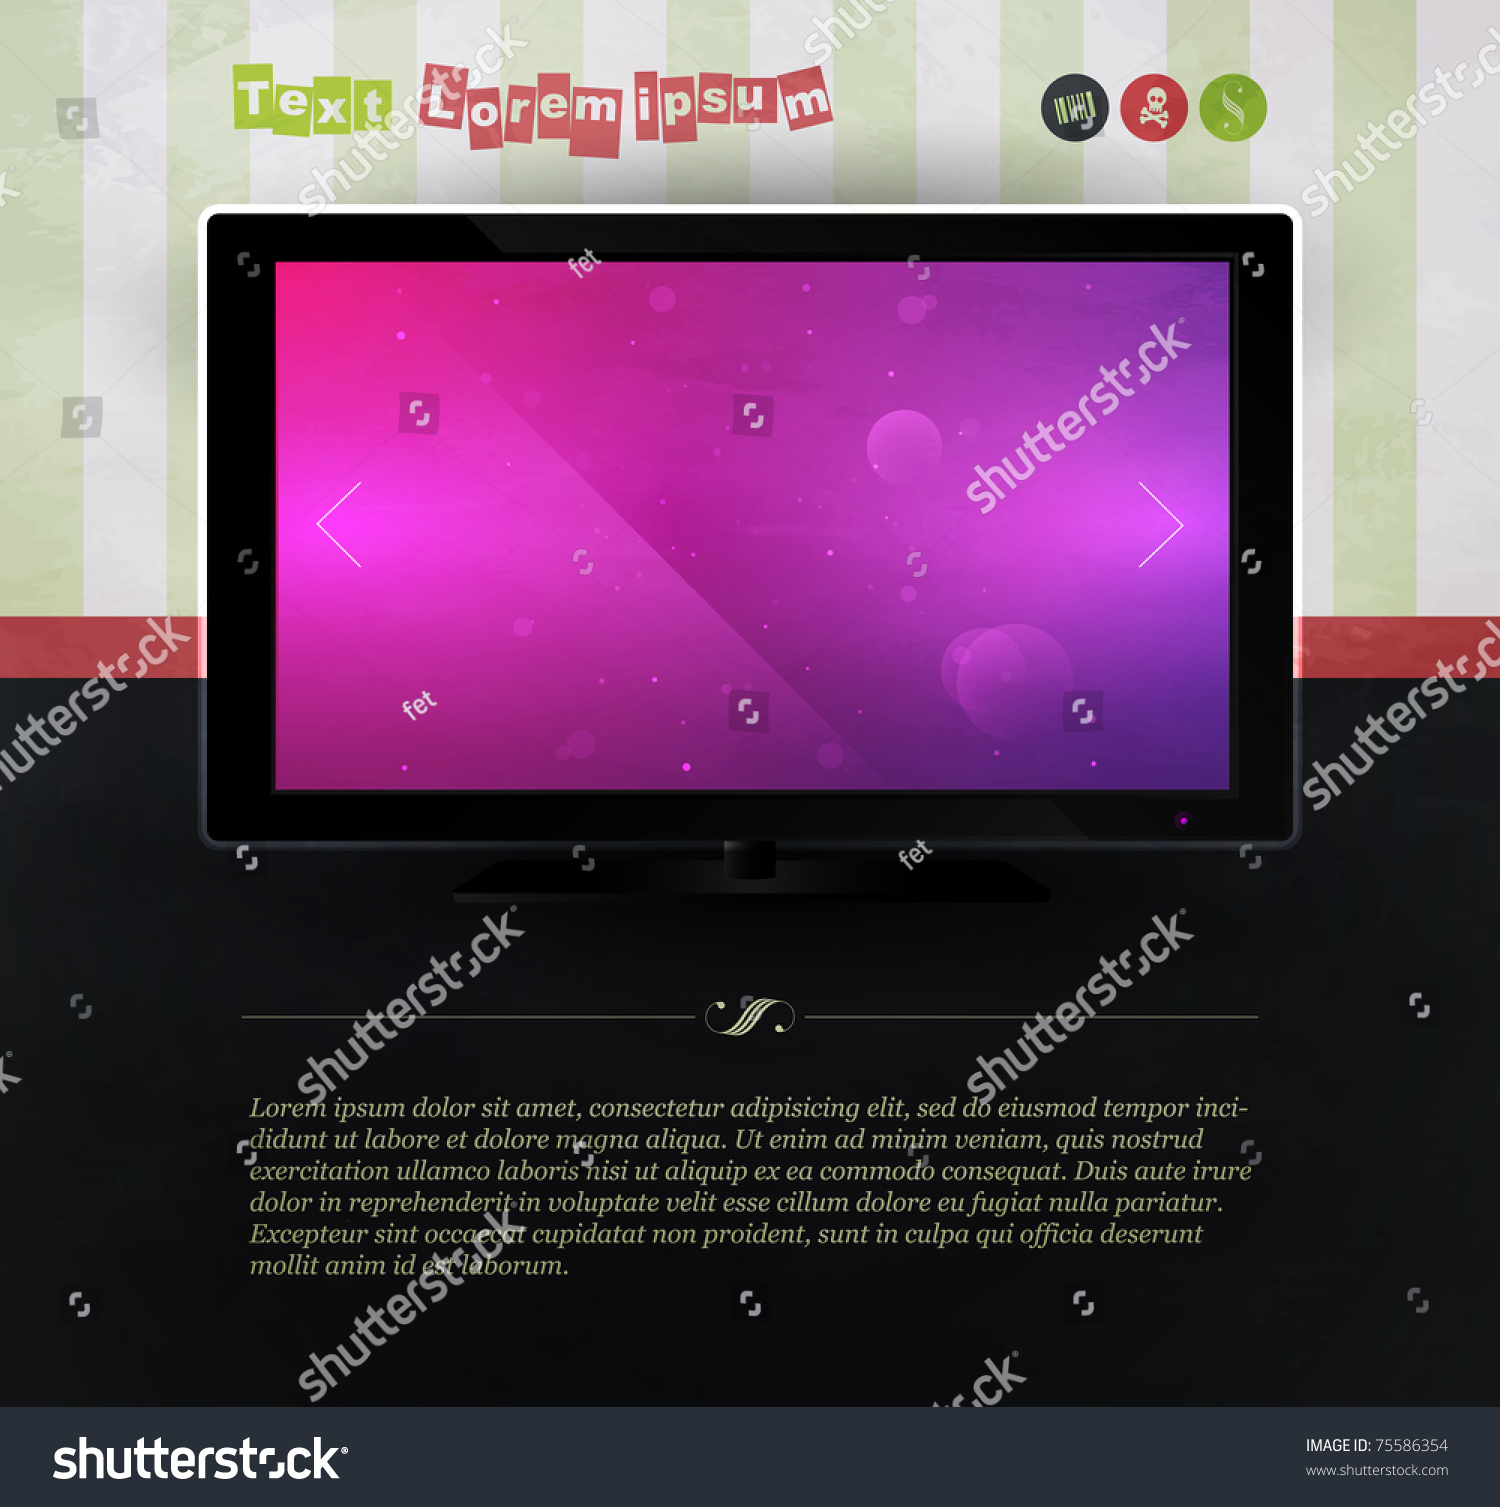 Tv against the wall with wallpaper website template stock for Wallpaper for walls websites